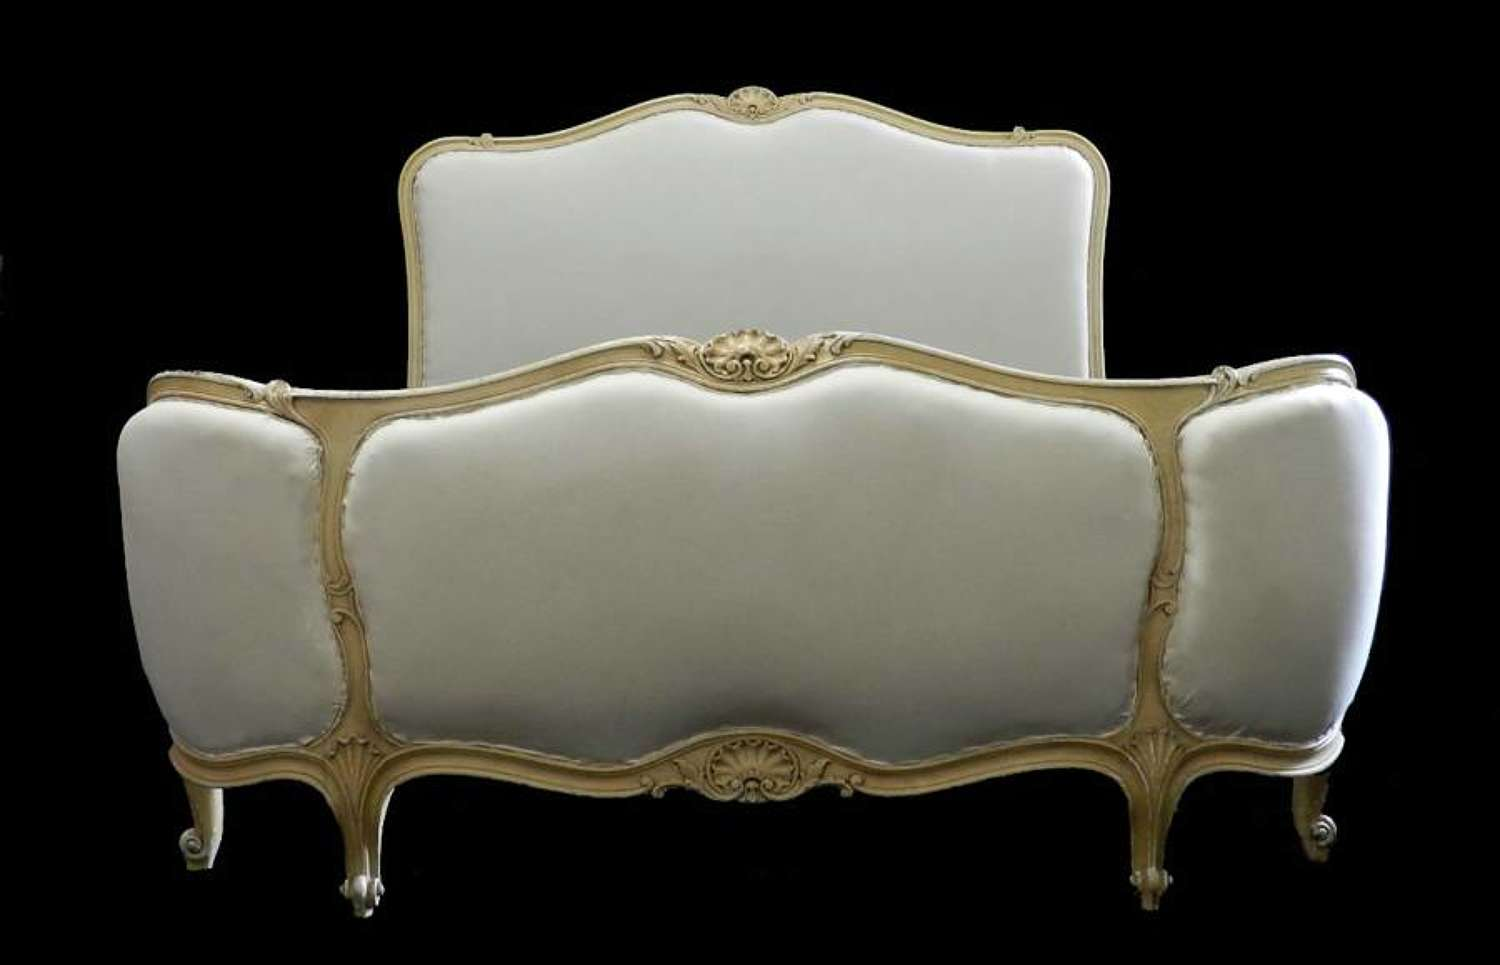 French Double Bed + Base Louis Corbeille ready for Top Covers upholstered to Calico